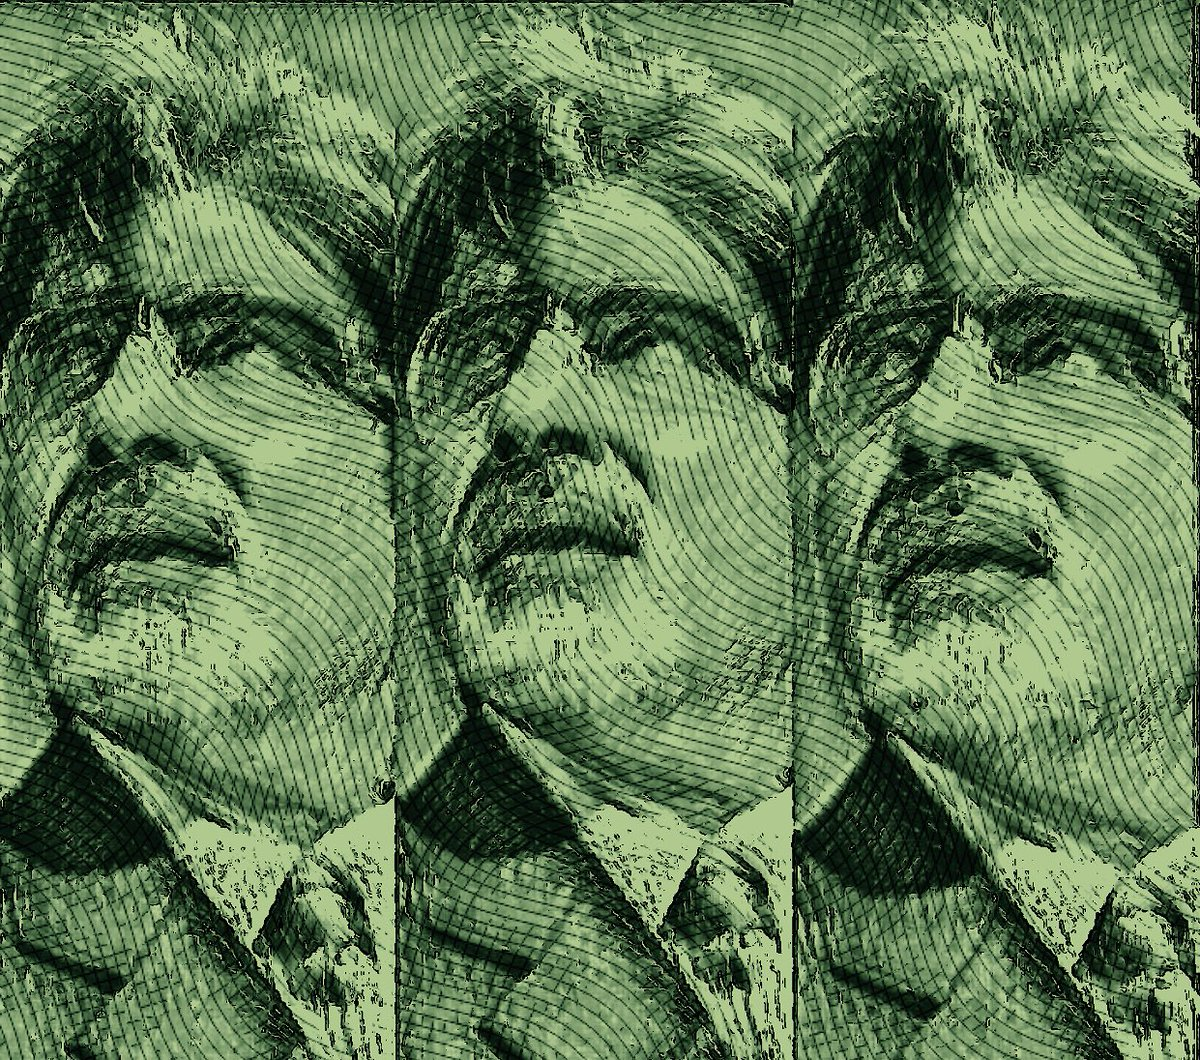 T 2582 - ALARM !!! It's estimated that India is responsible for 60% of the rubbish in the world's oceans. https://t.co/cwUTJxGPVu